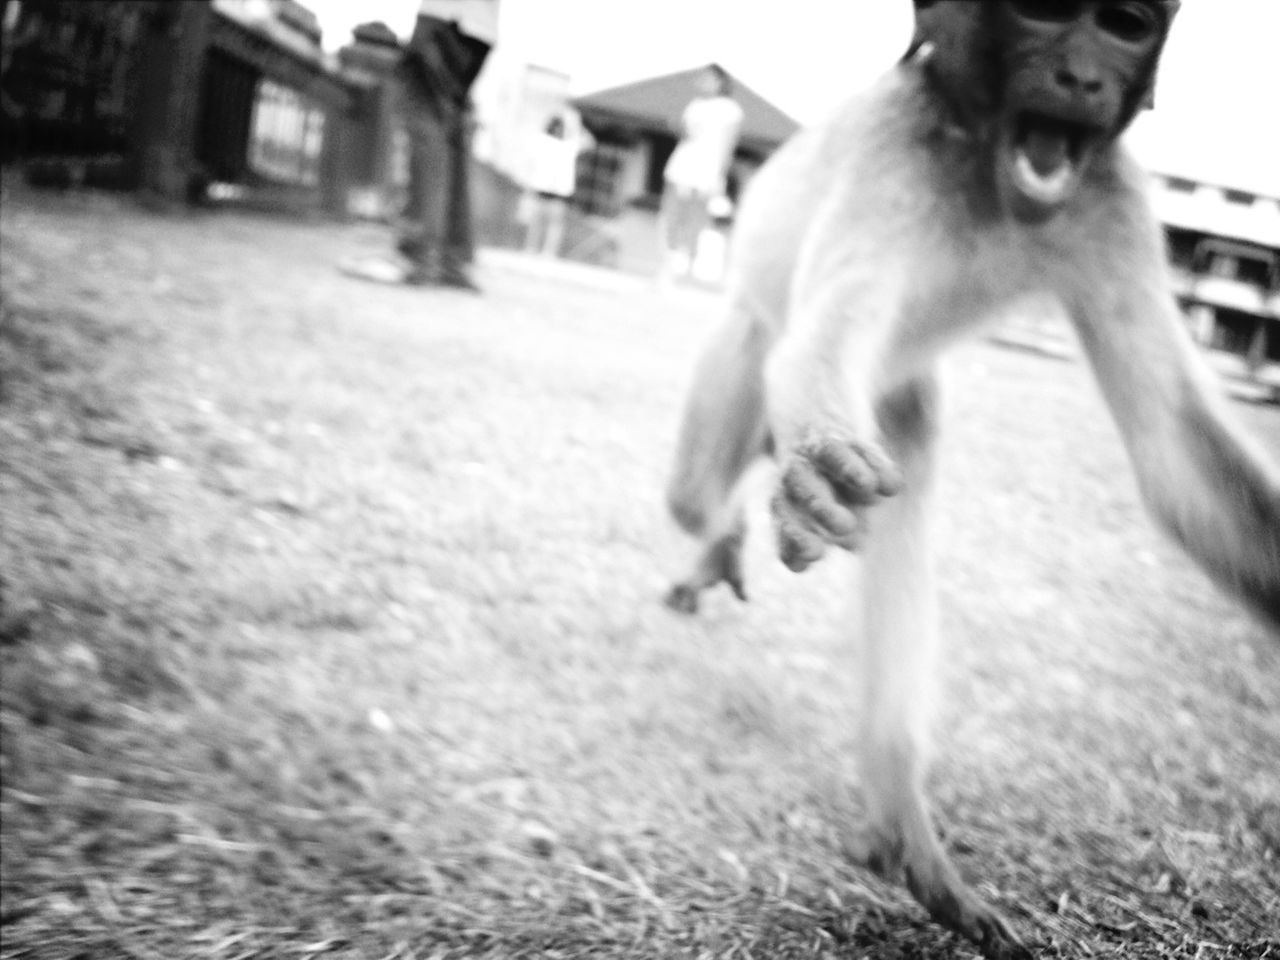 Close-up of monkey running on field